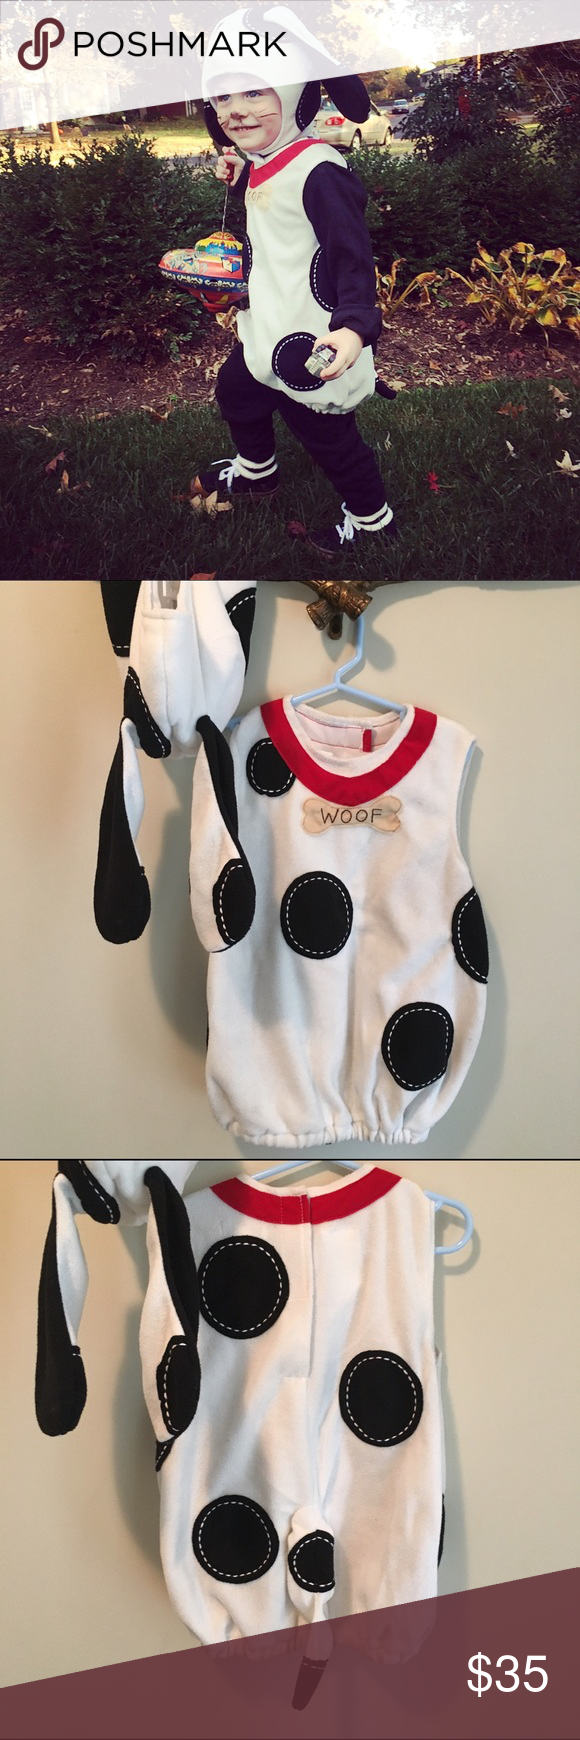 Pottery Barn Kids puppy costume Puppy costume for kids